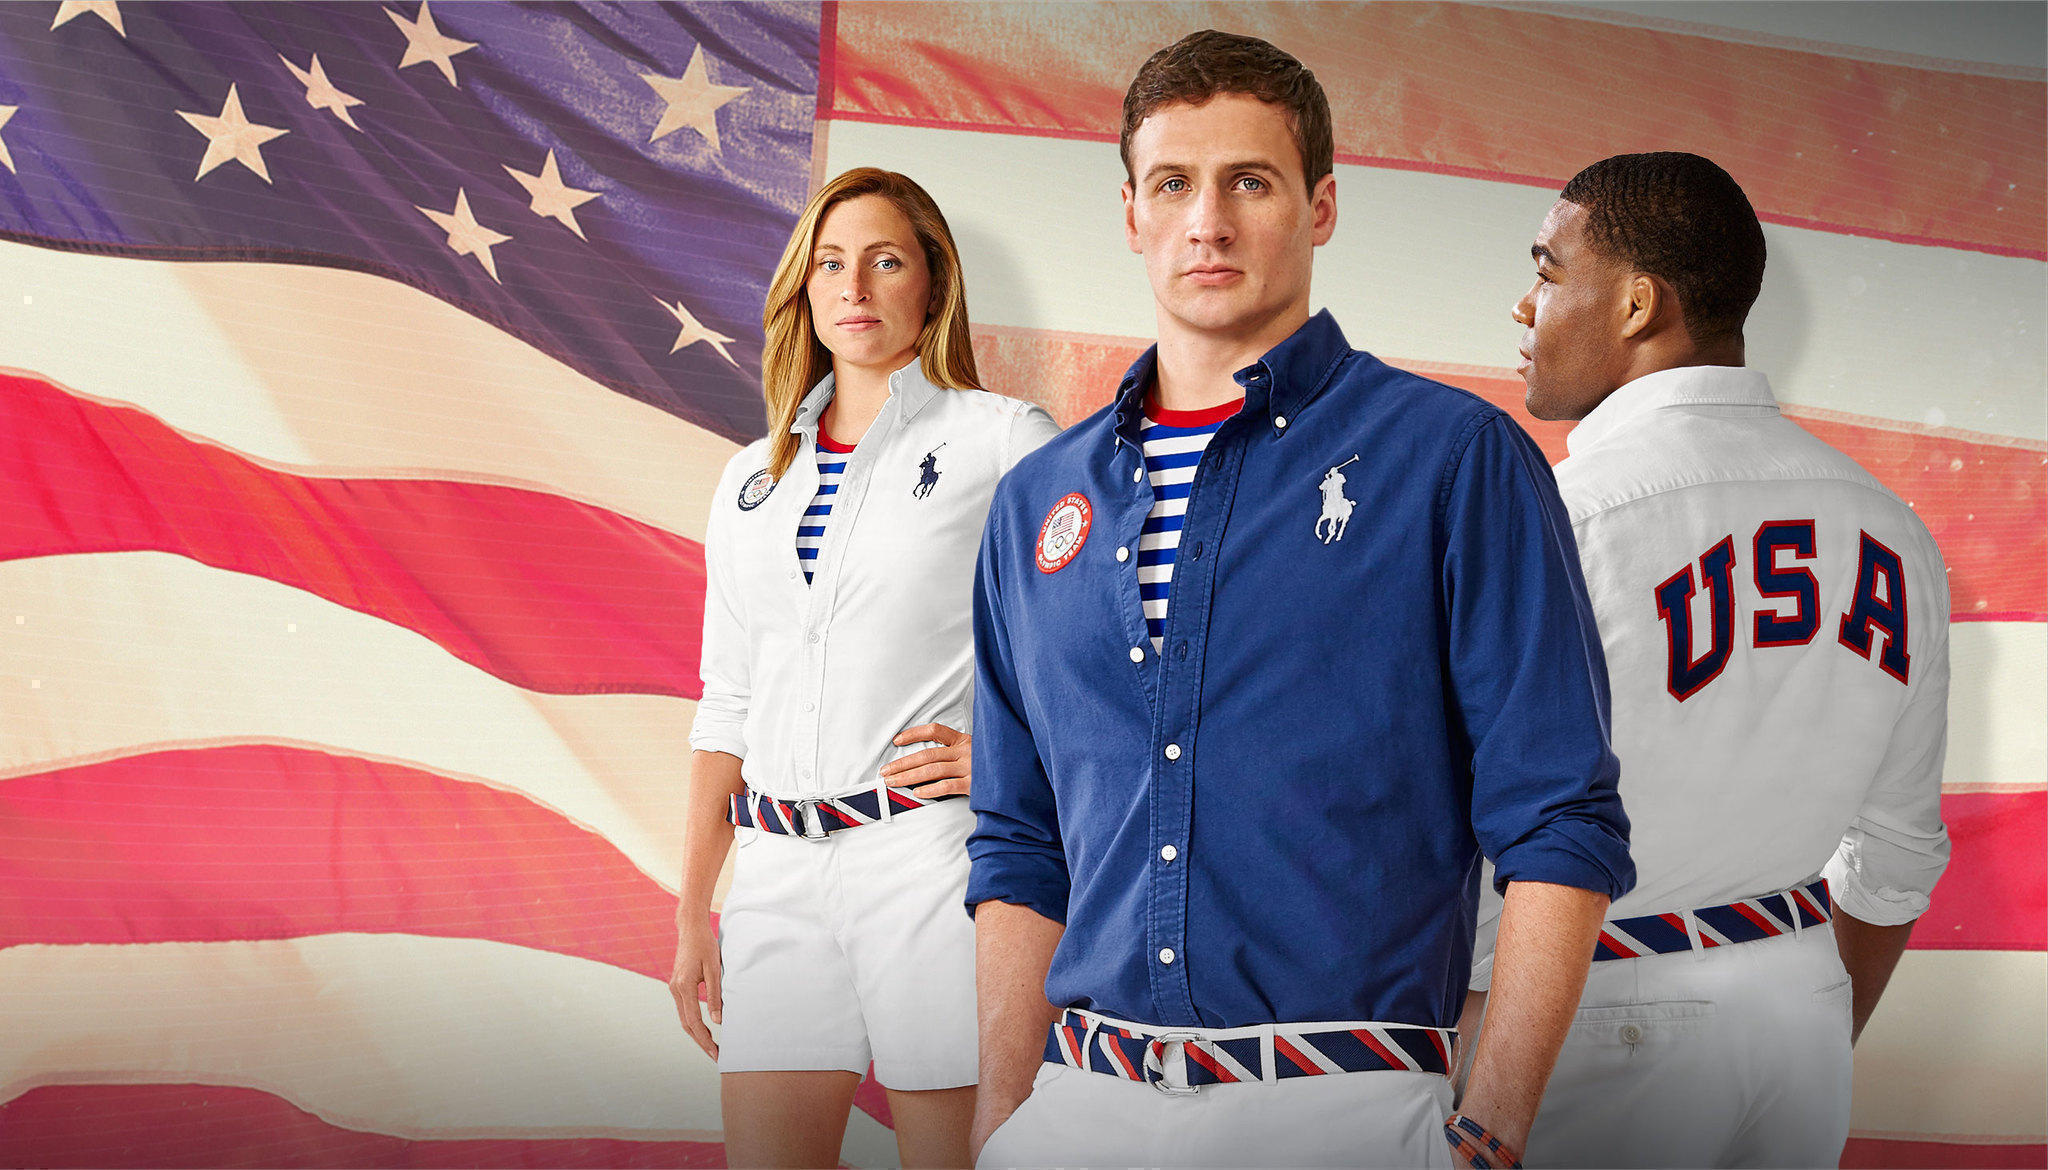 The Polo Ralph Lauren 2016 U.S. Olympic collection: Four things to think about - LA Times